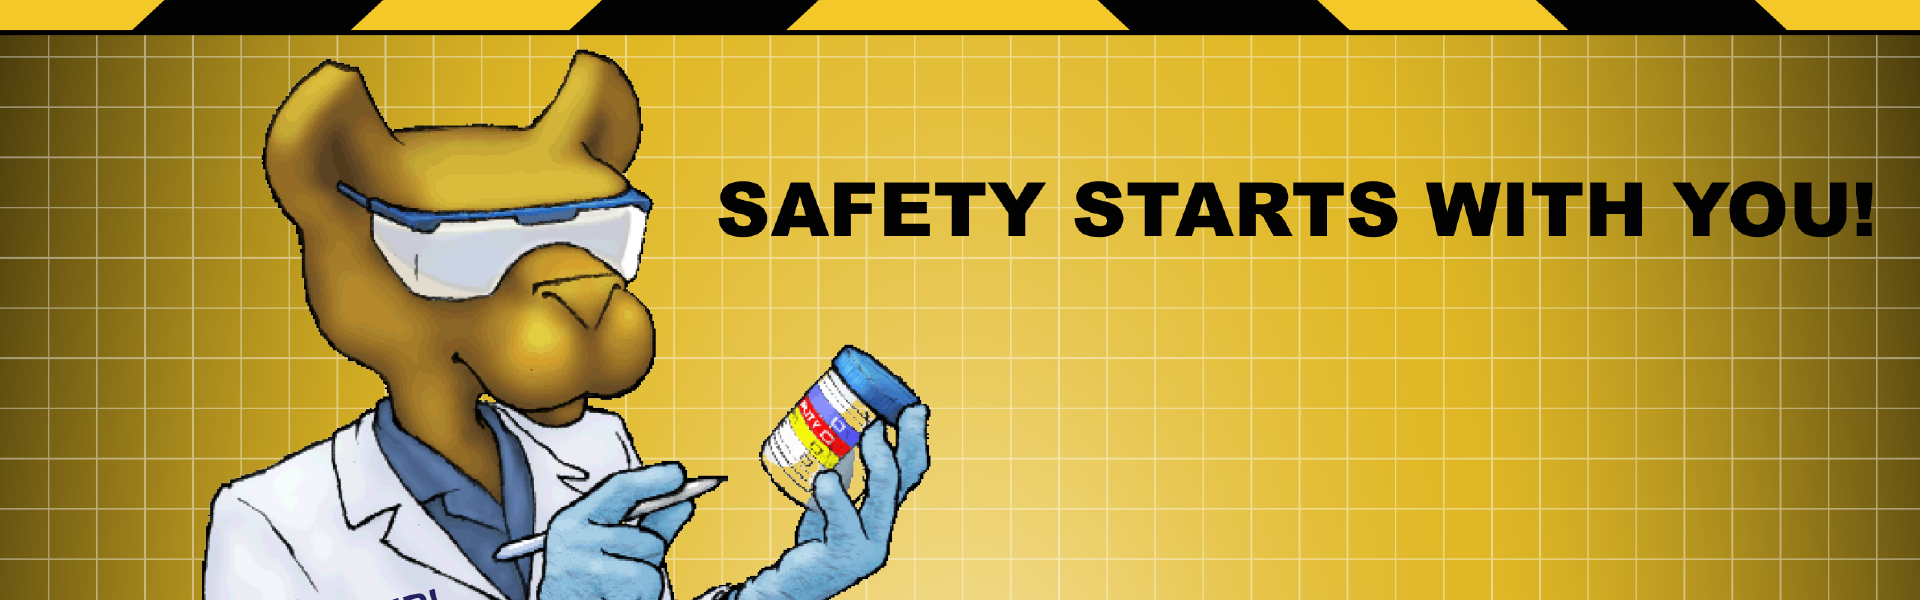 Safety starts with you